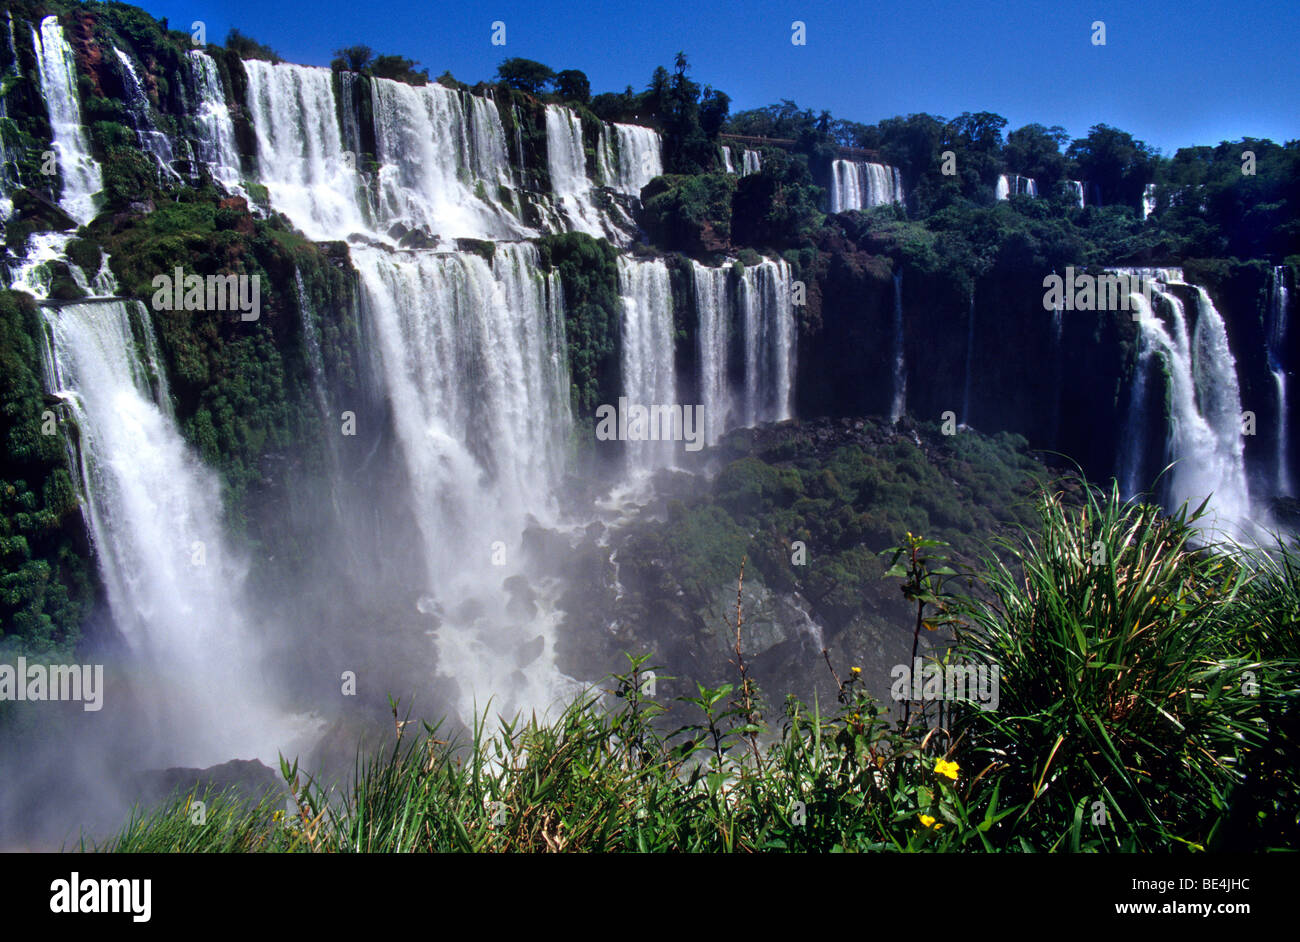 View from San Martin Island balcony .Iguazu National Park Falls, Misiones province. Argentina - Stock Image